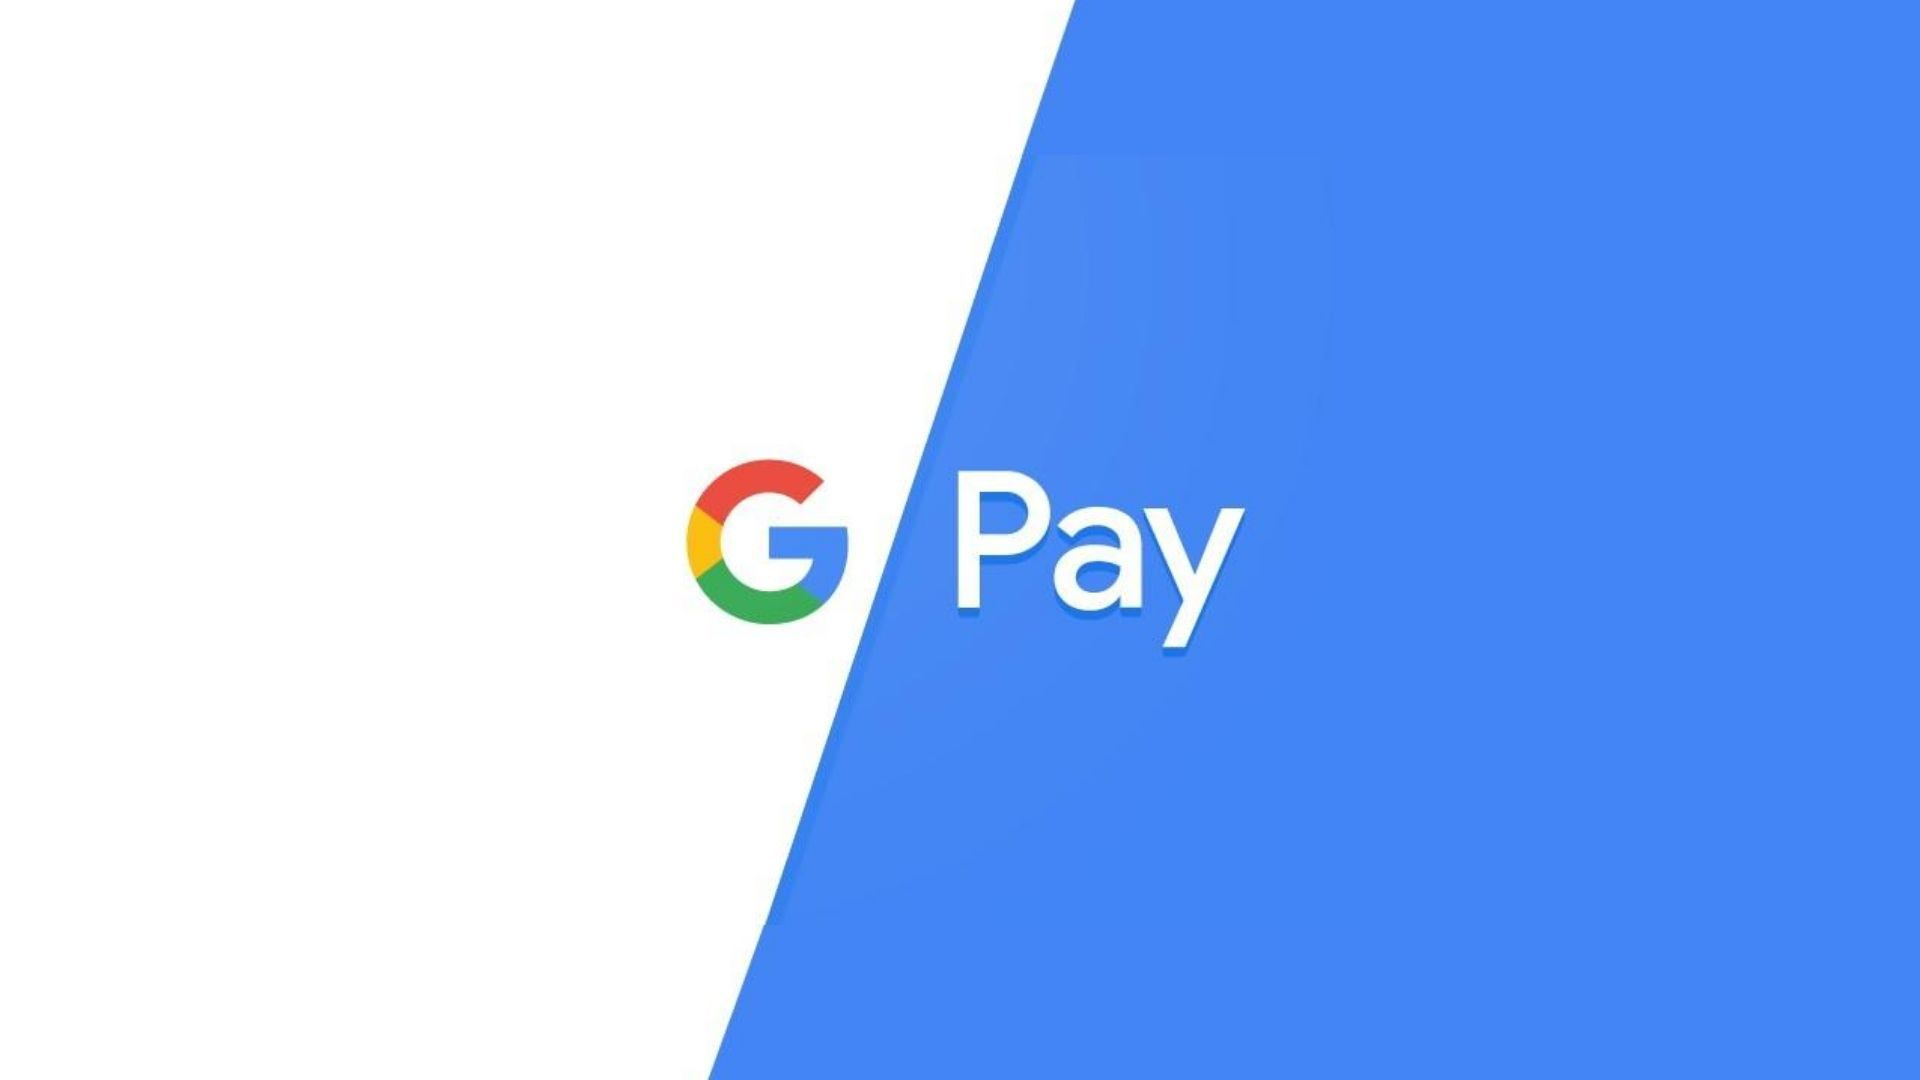 Business Model of Google Pay